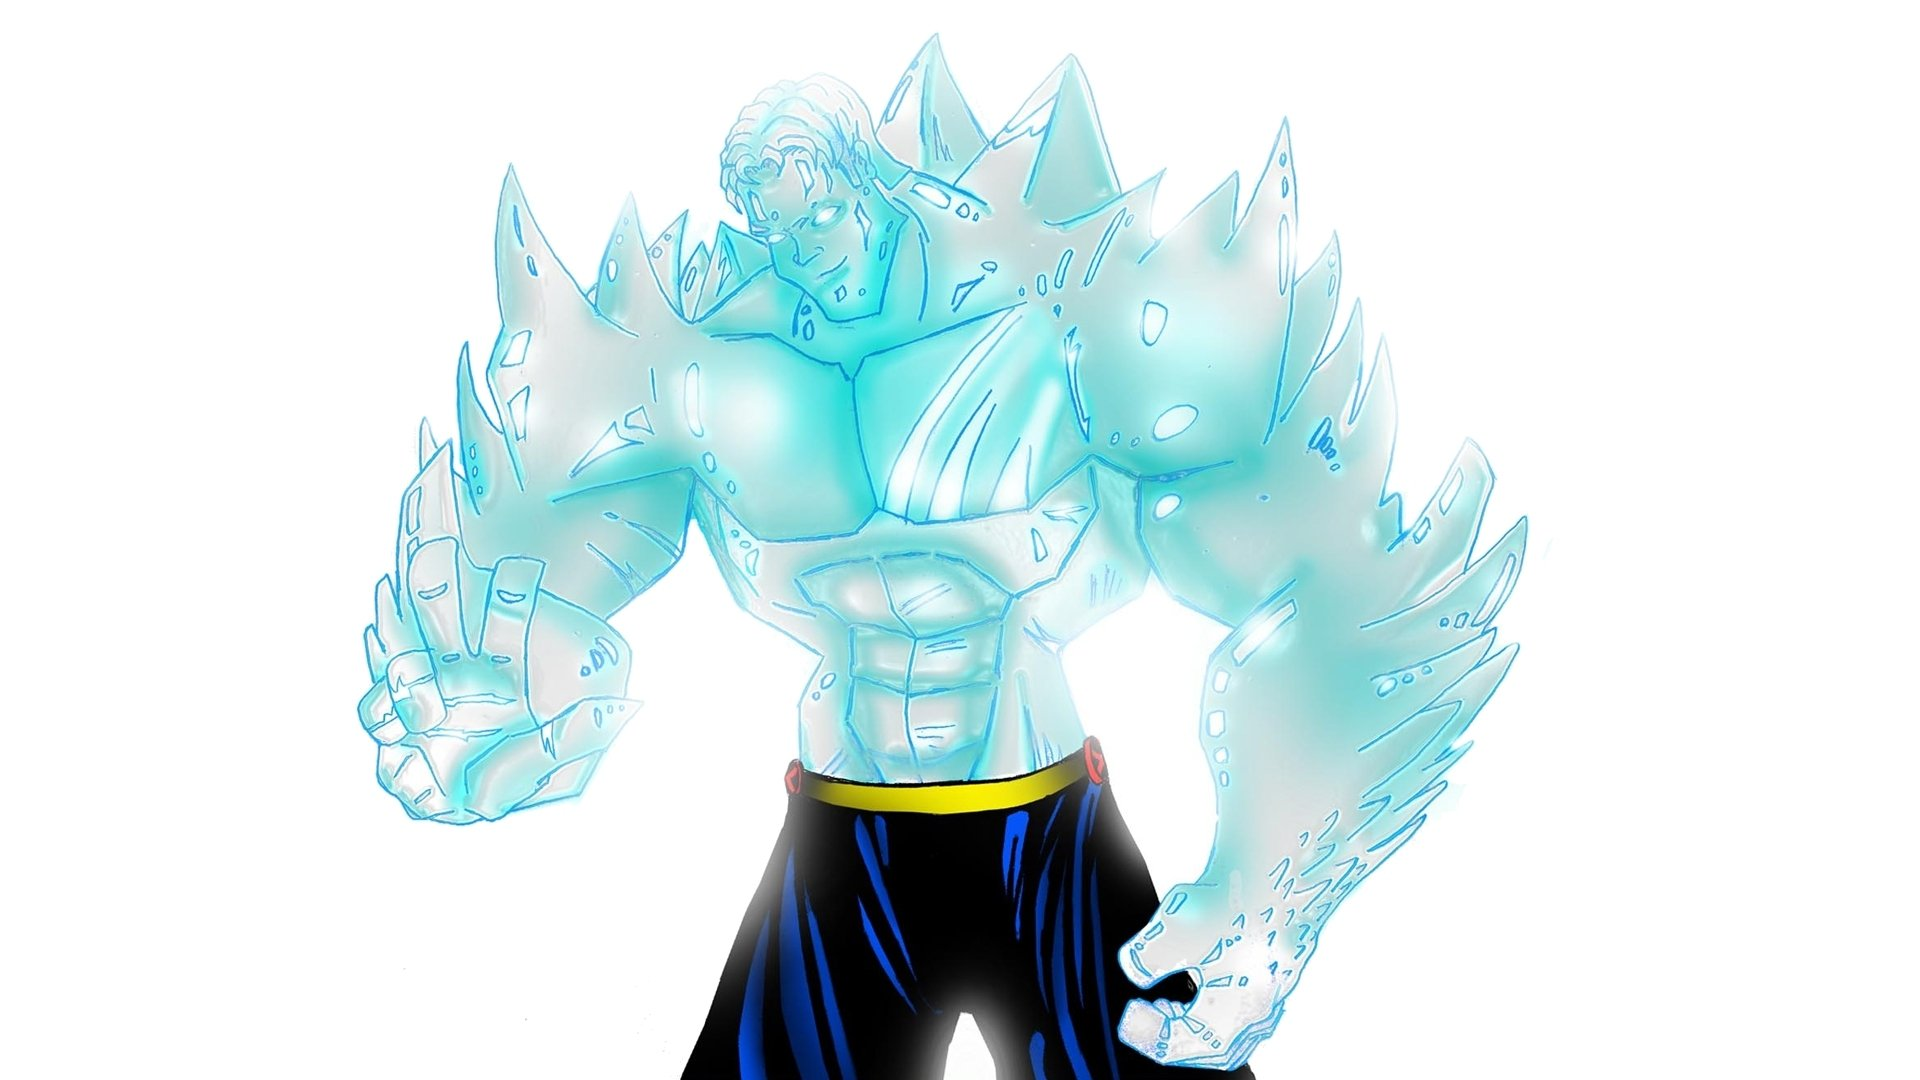 Iceman HD Wallpaper Background Image 1920x1080 ID478285 1920x1080